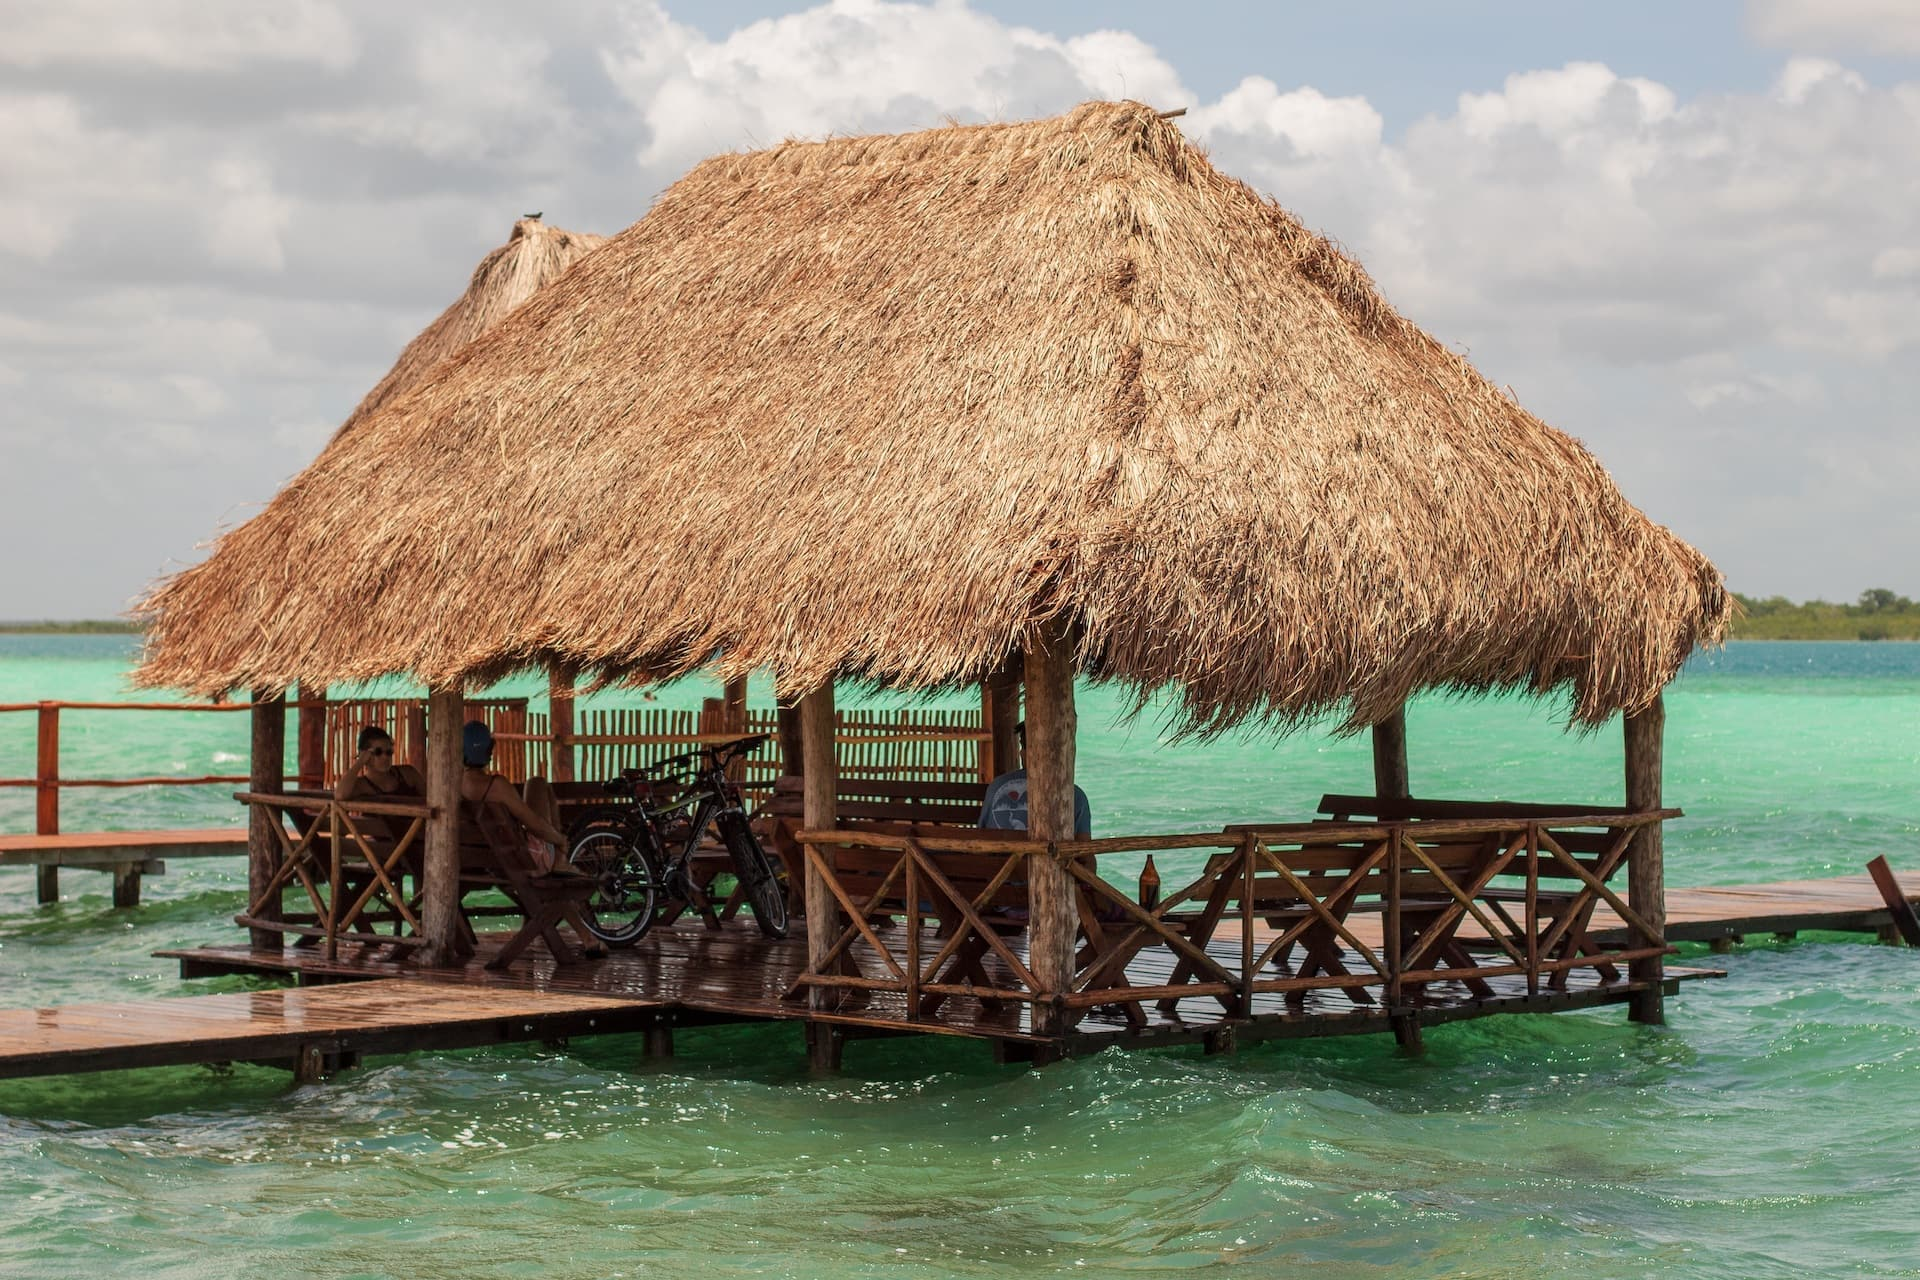 A Palapa Creates a Coastal Vibe